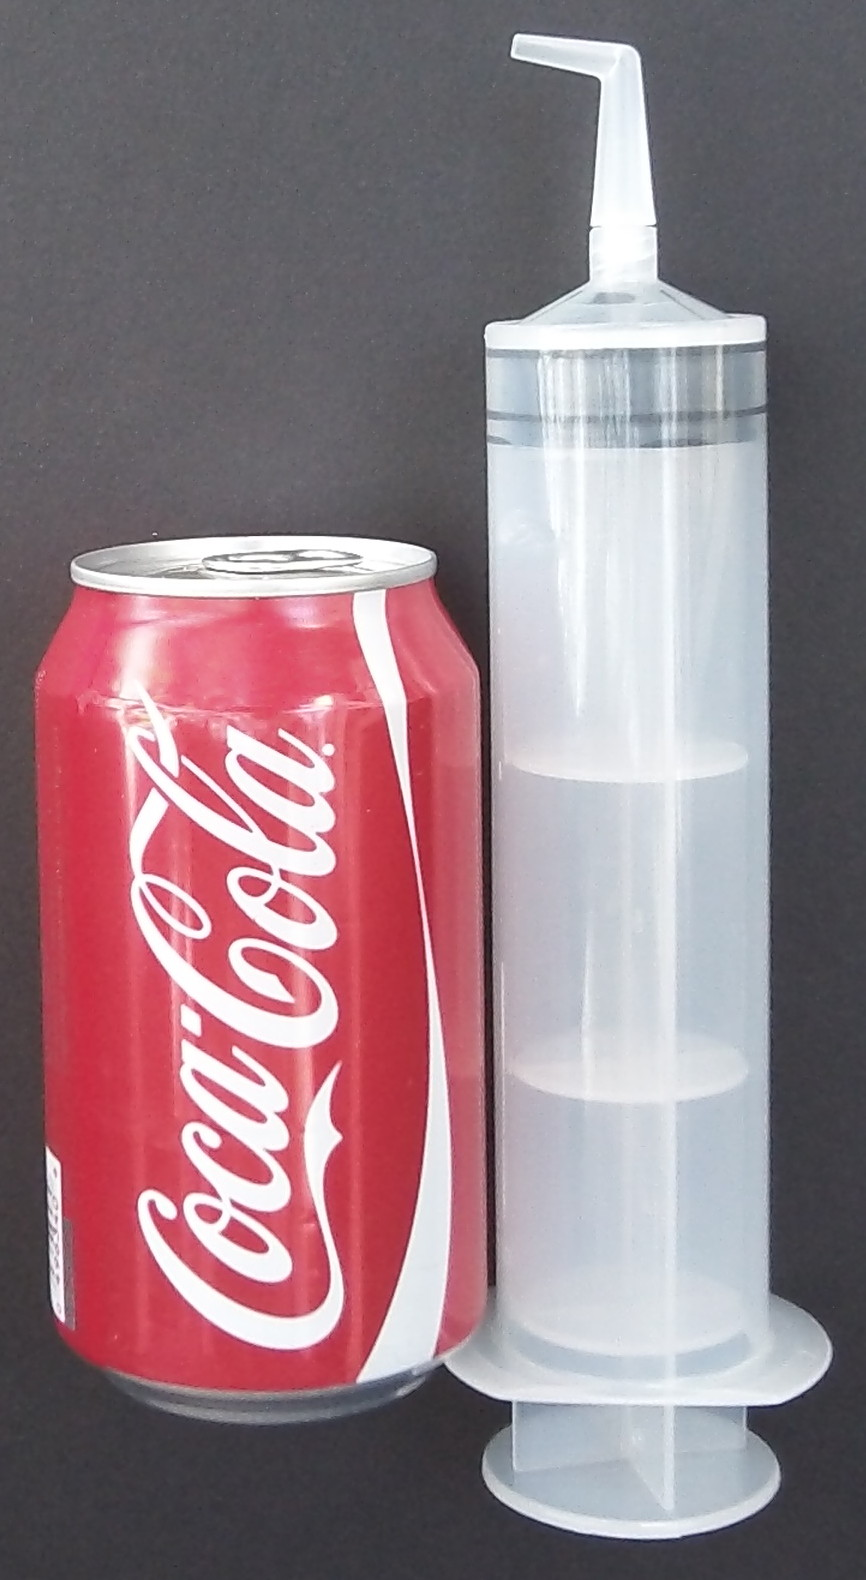 Size comparison of ear syringe to soda can.